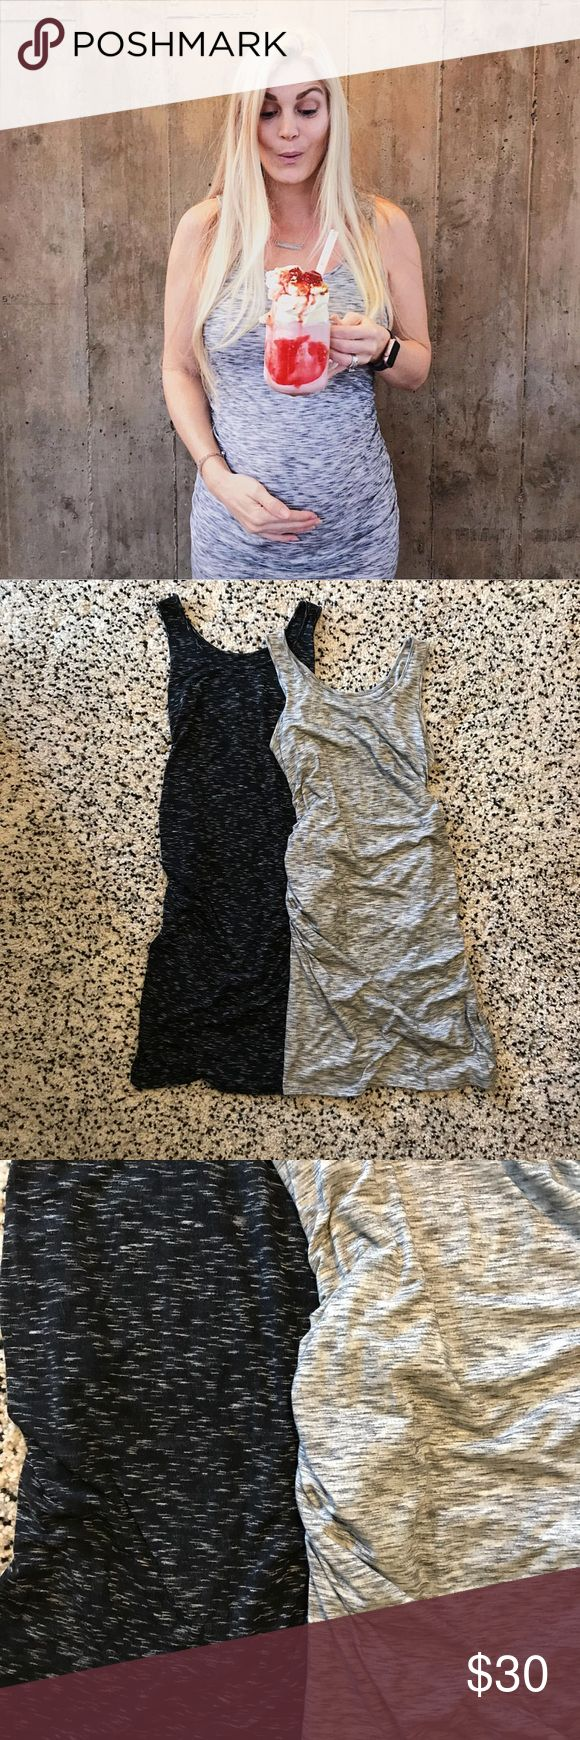 Liz Lange maternity dresses size S Get both heathered black and heathered grey maternity dresses, both gently worn and were a great maternity piece. Both size S Liz Lange for Target Dresses Strapless